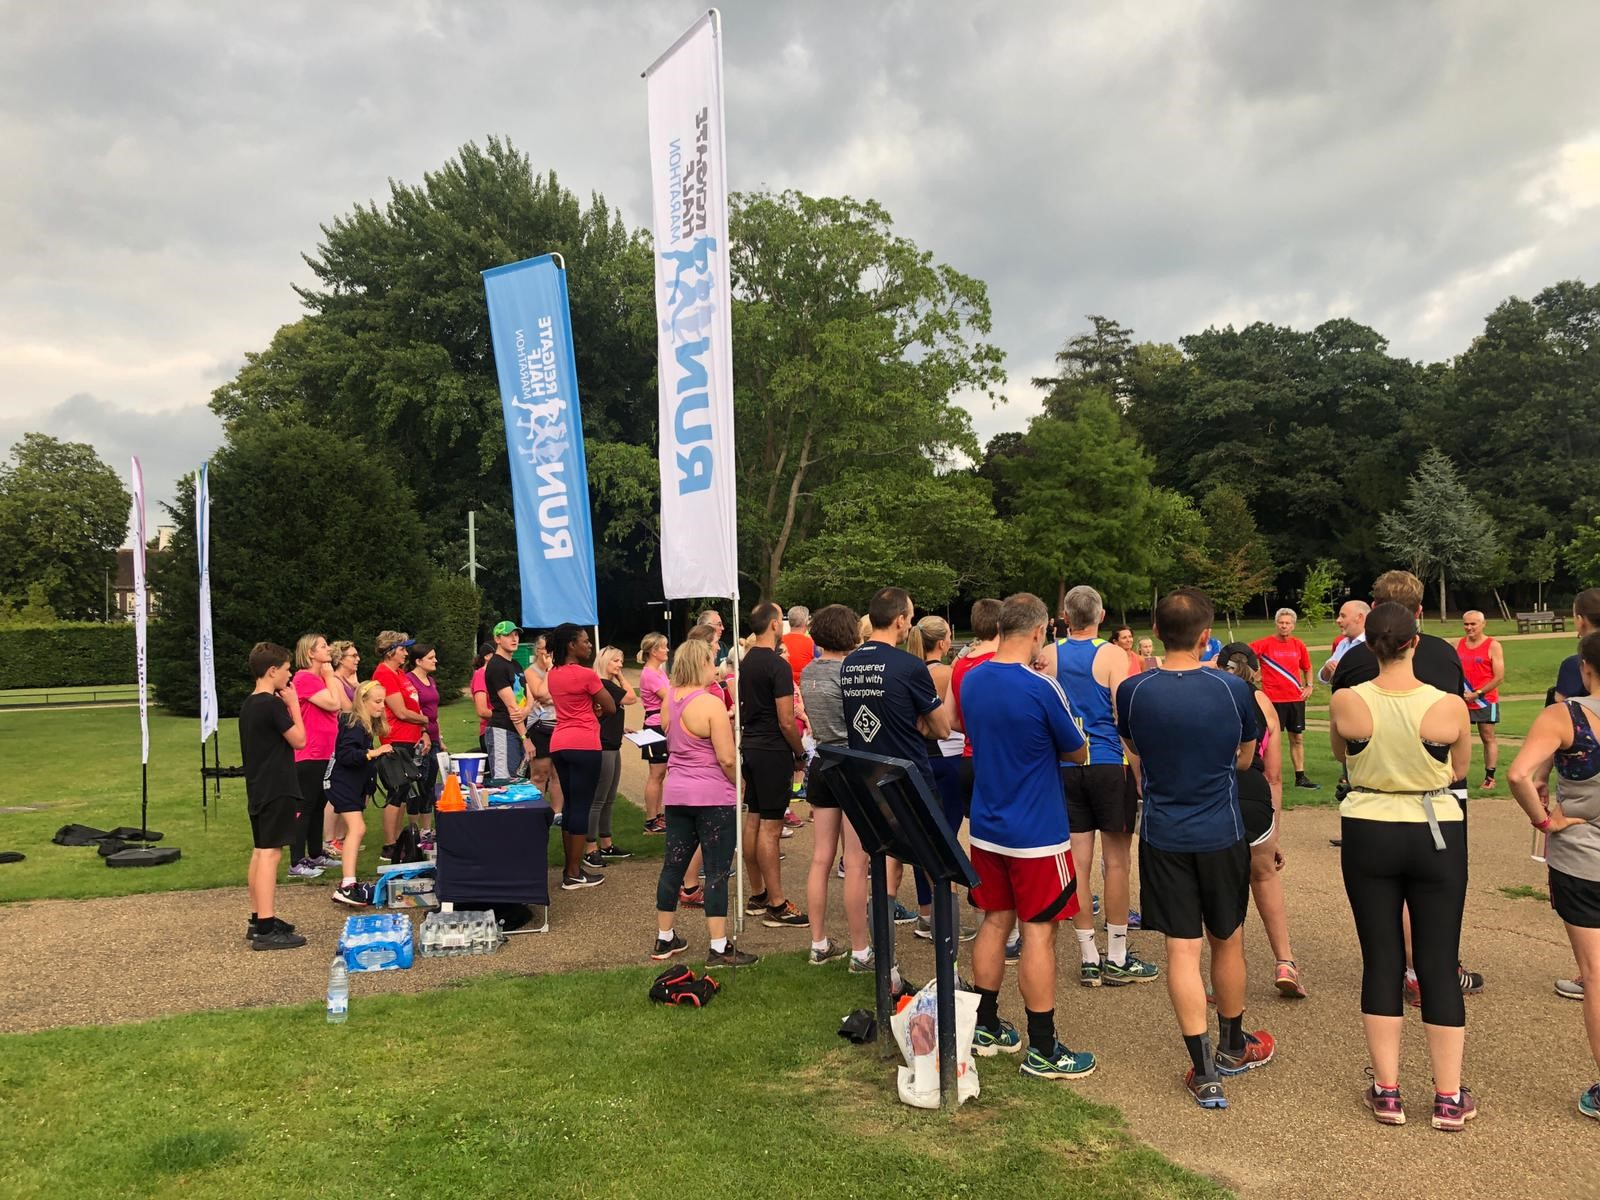 Intersport Run Reigate Run Club – Week 3